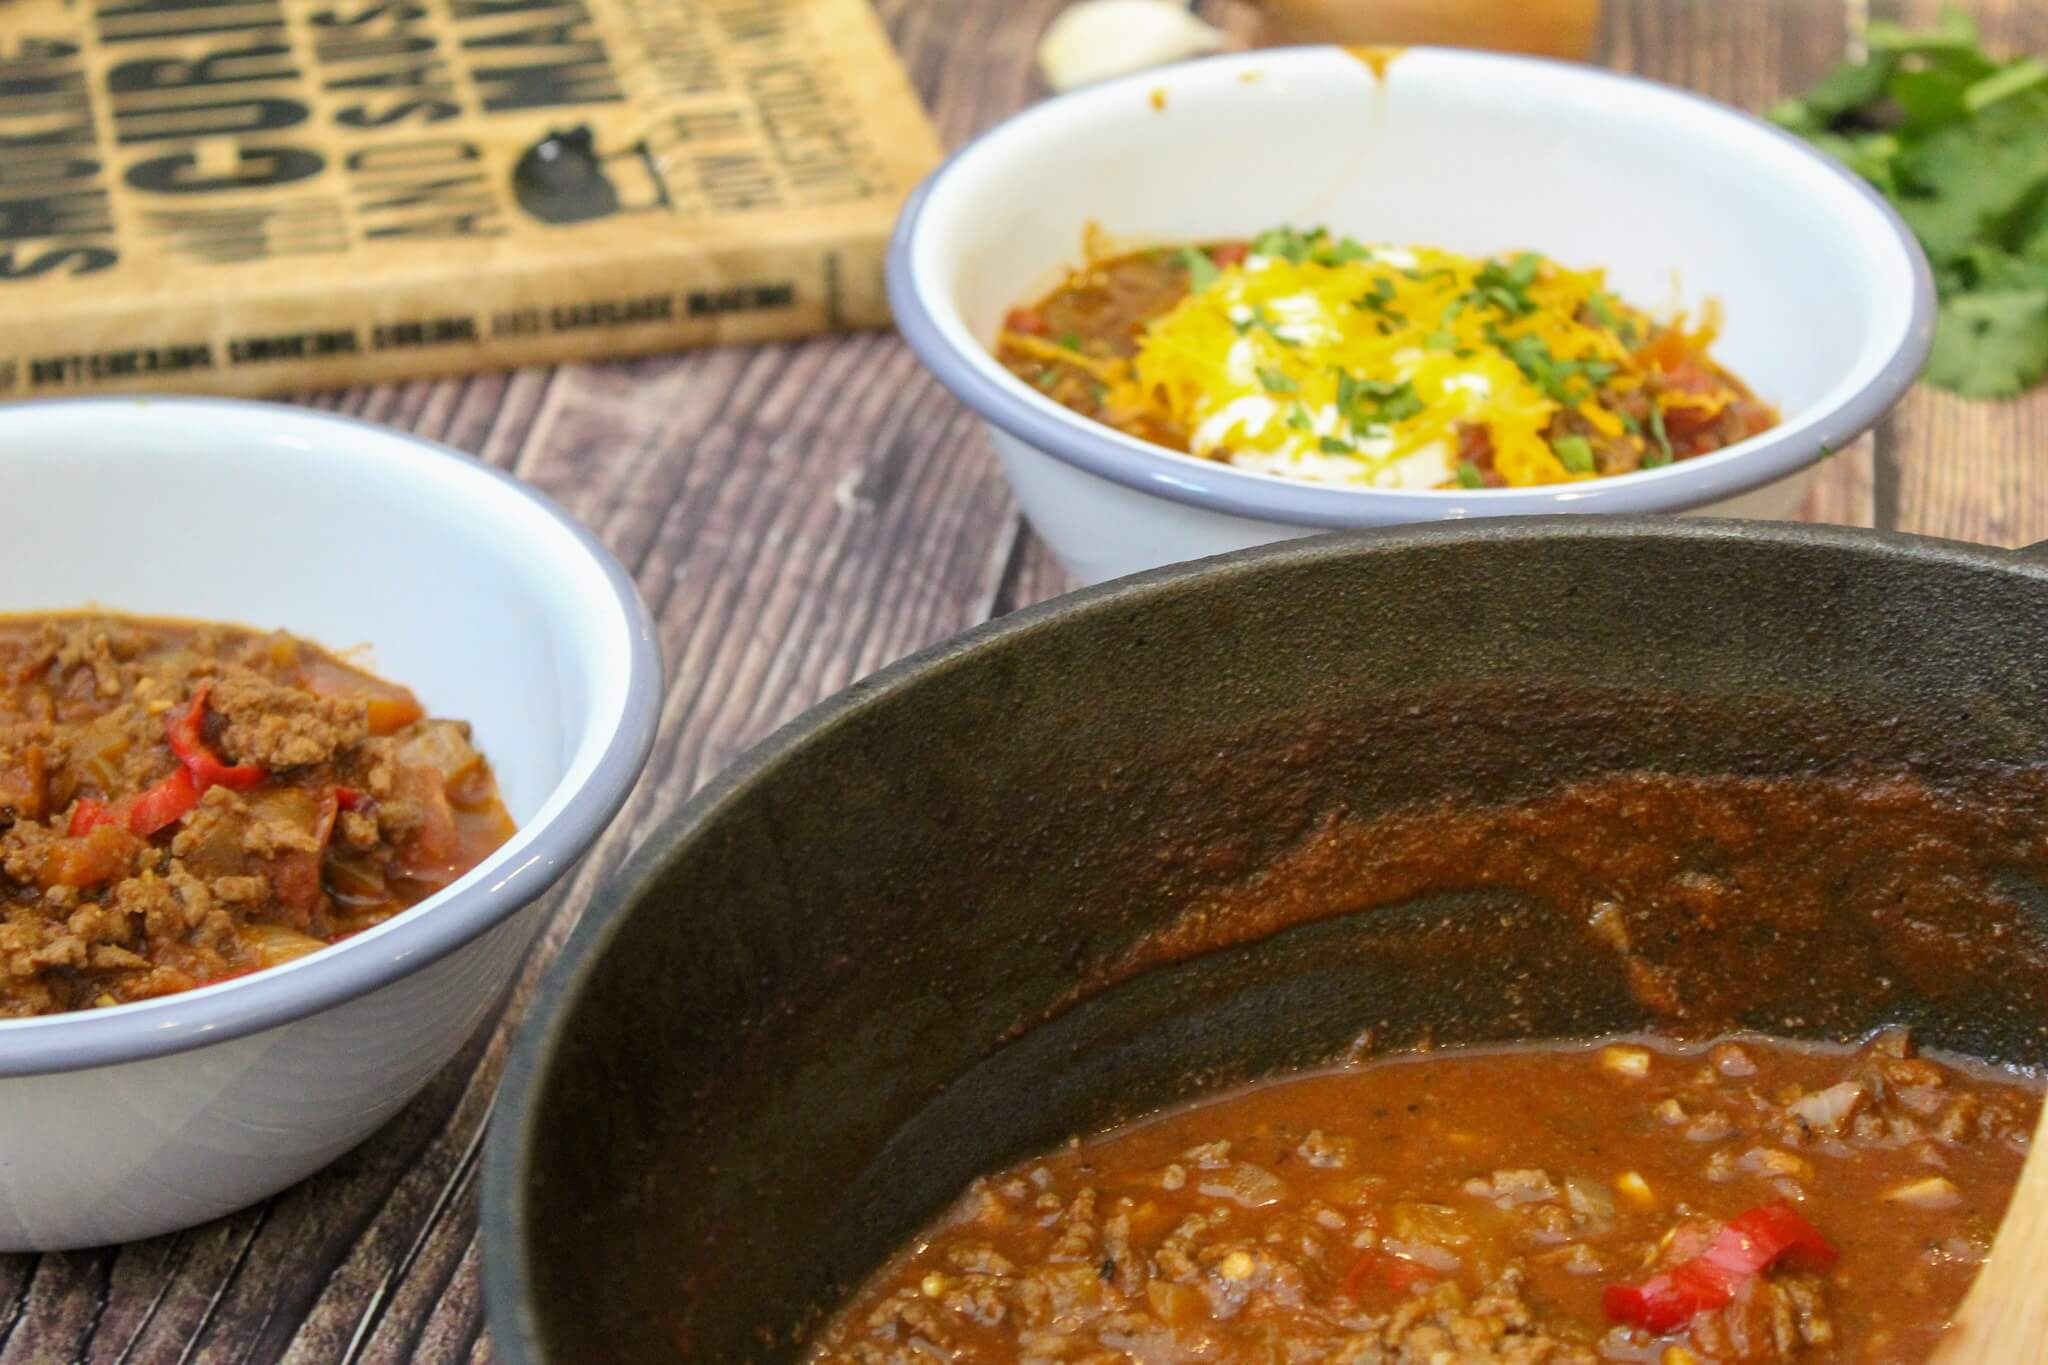 Chili in two bowls and a skillet